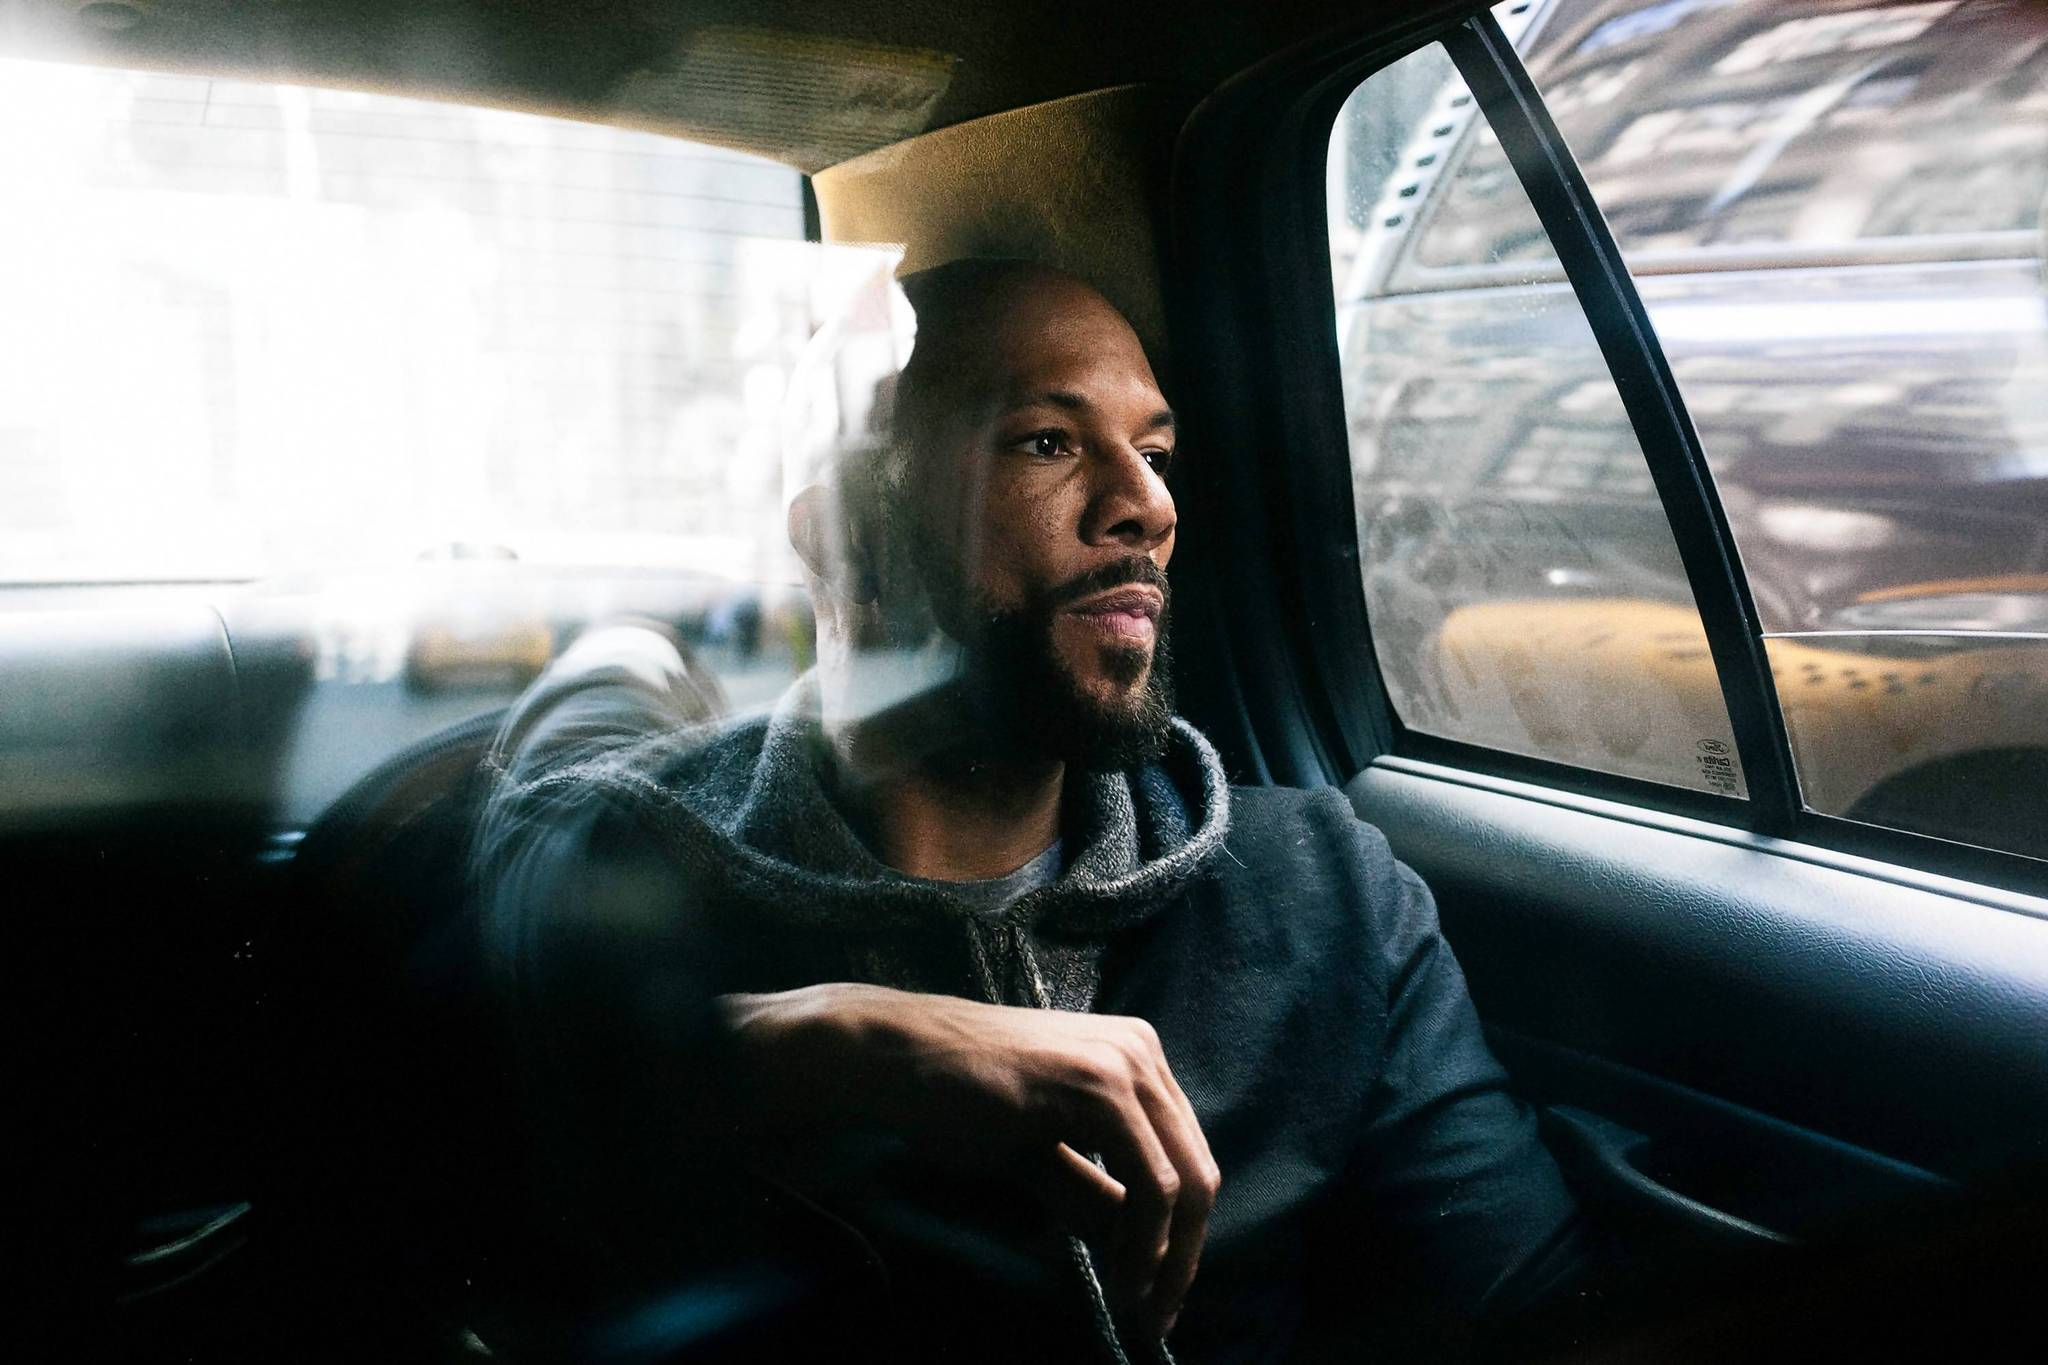 Actor and hip-hop artist Common performs Saturday as part of the Summer Spirit Festival at Merriweather Post Pavilion.